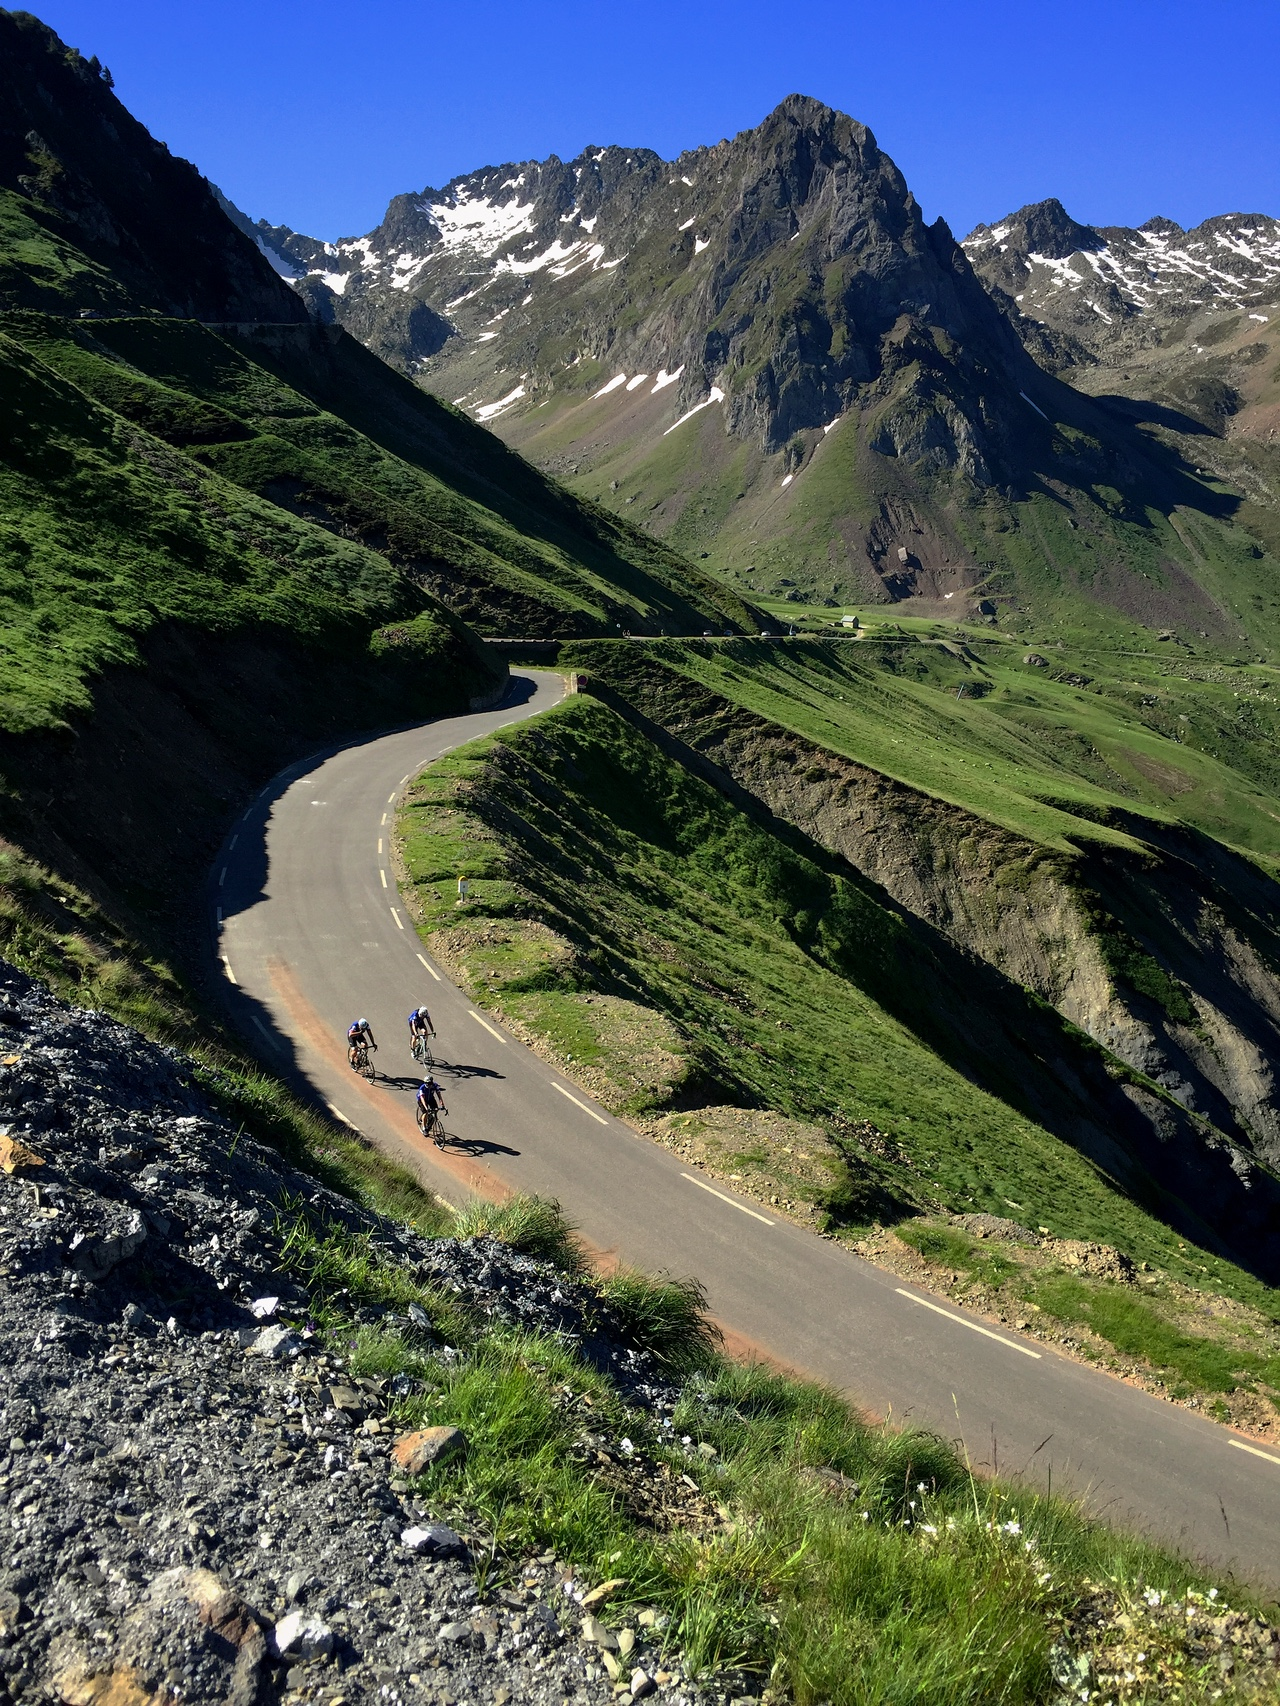 Climbing the Tourmalet. TdF coming soon!